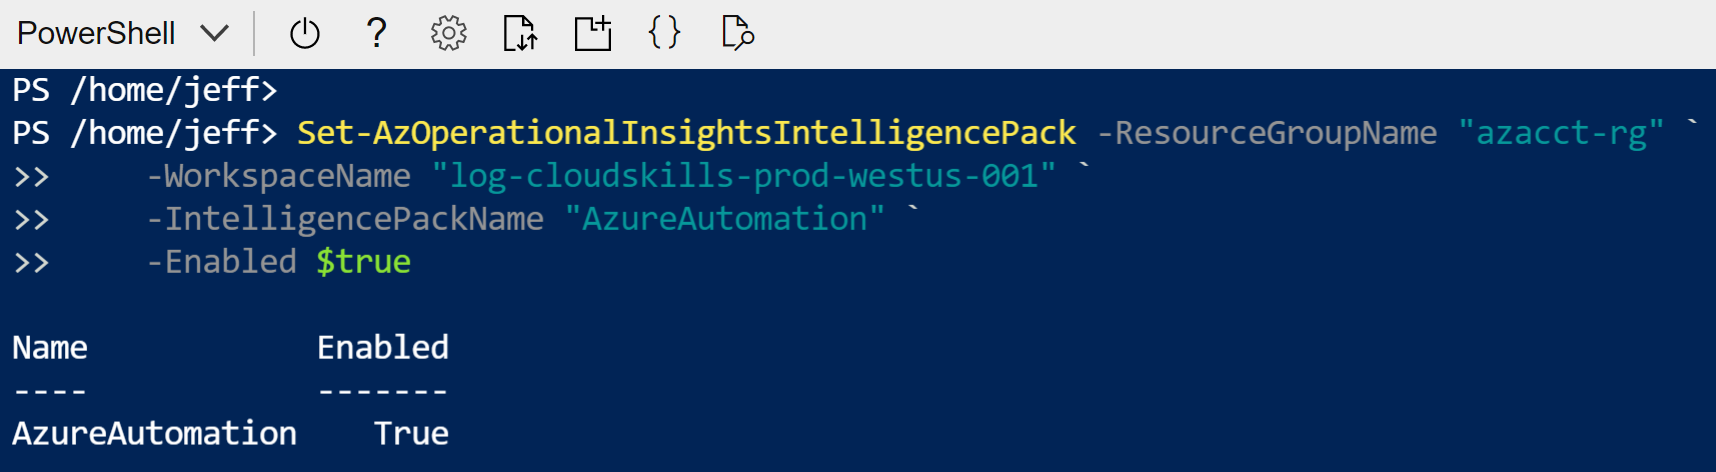 Enable Azure Automation in workspace